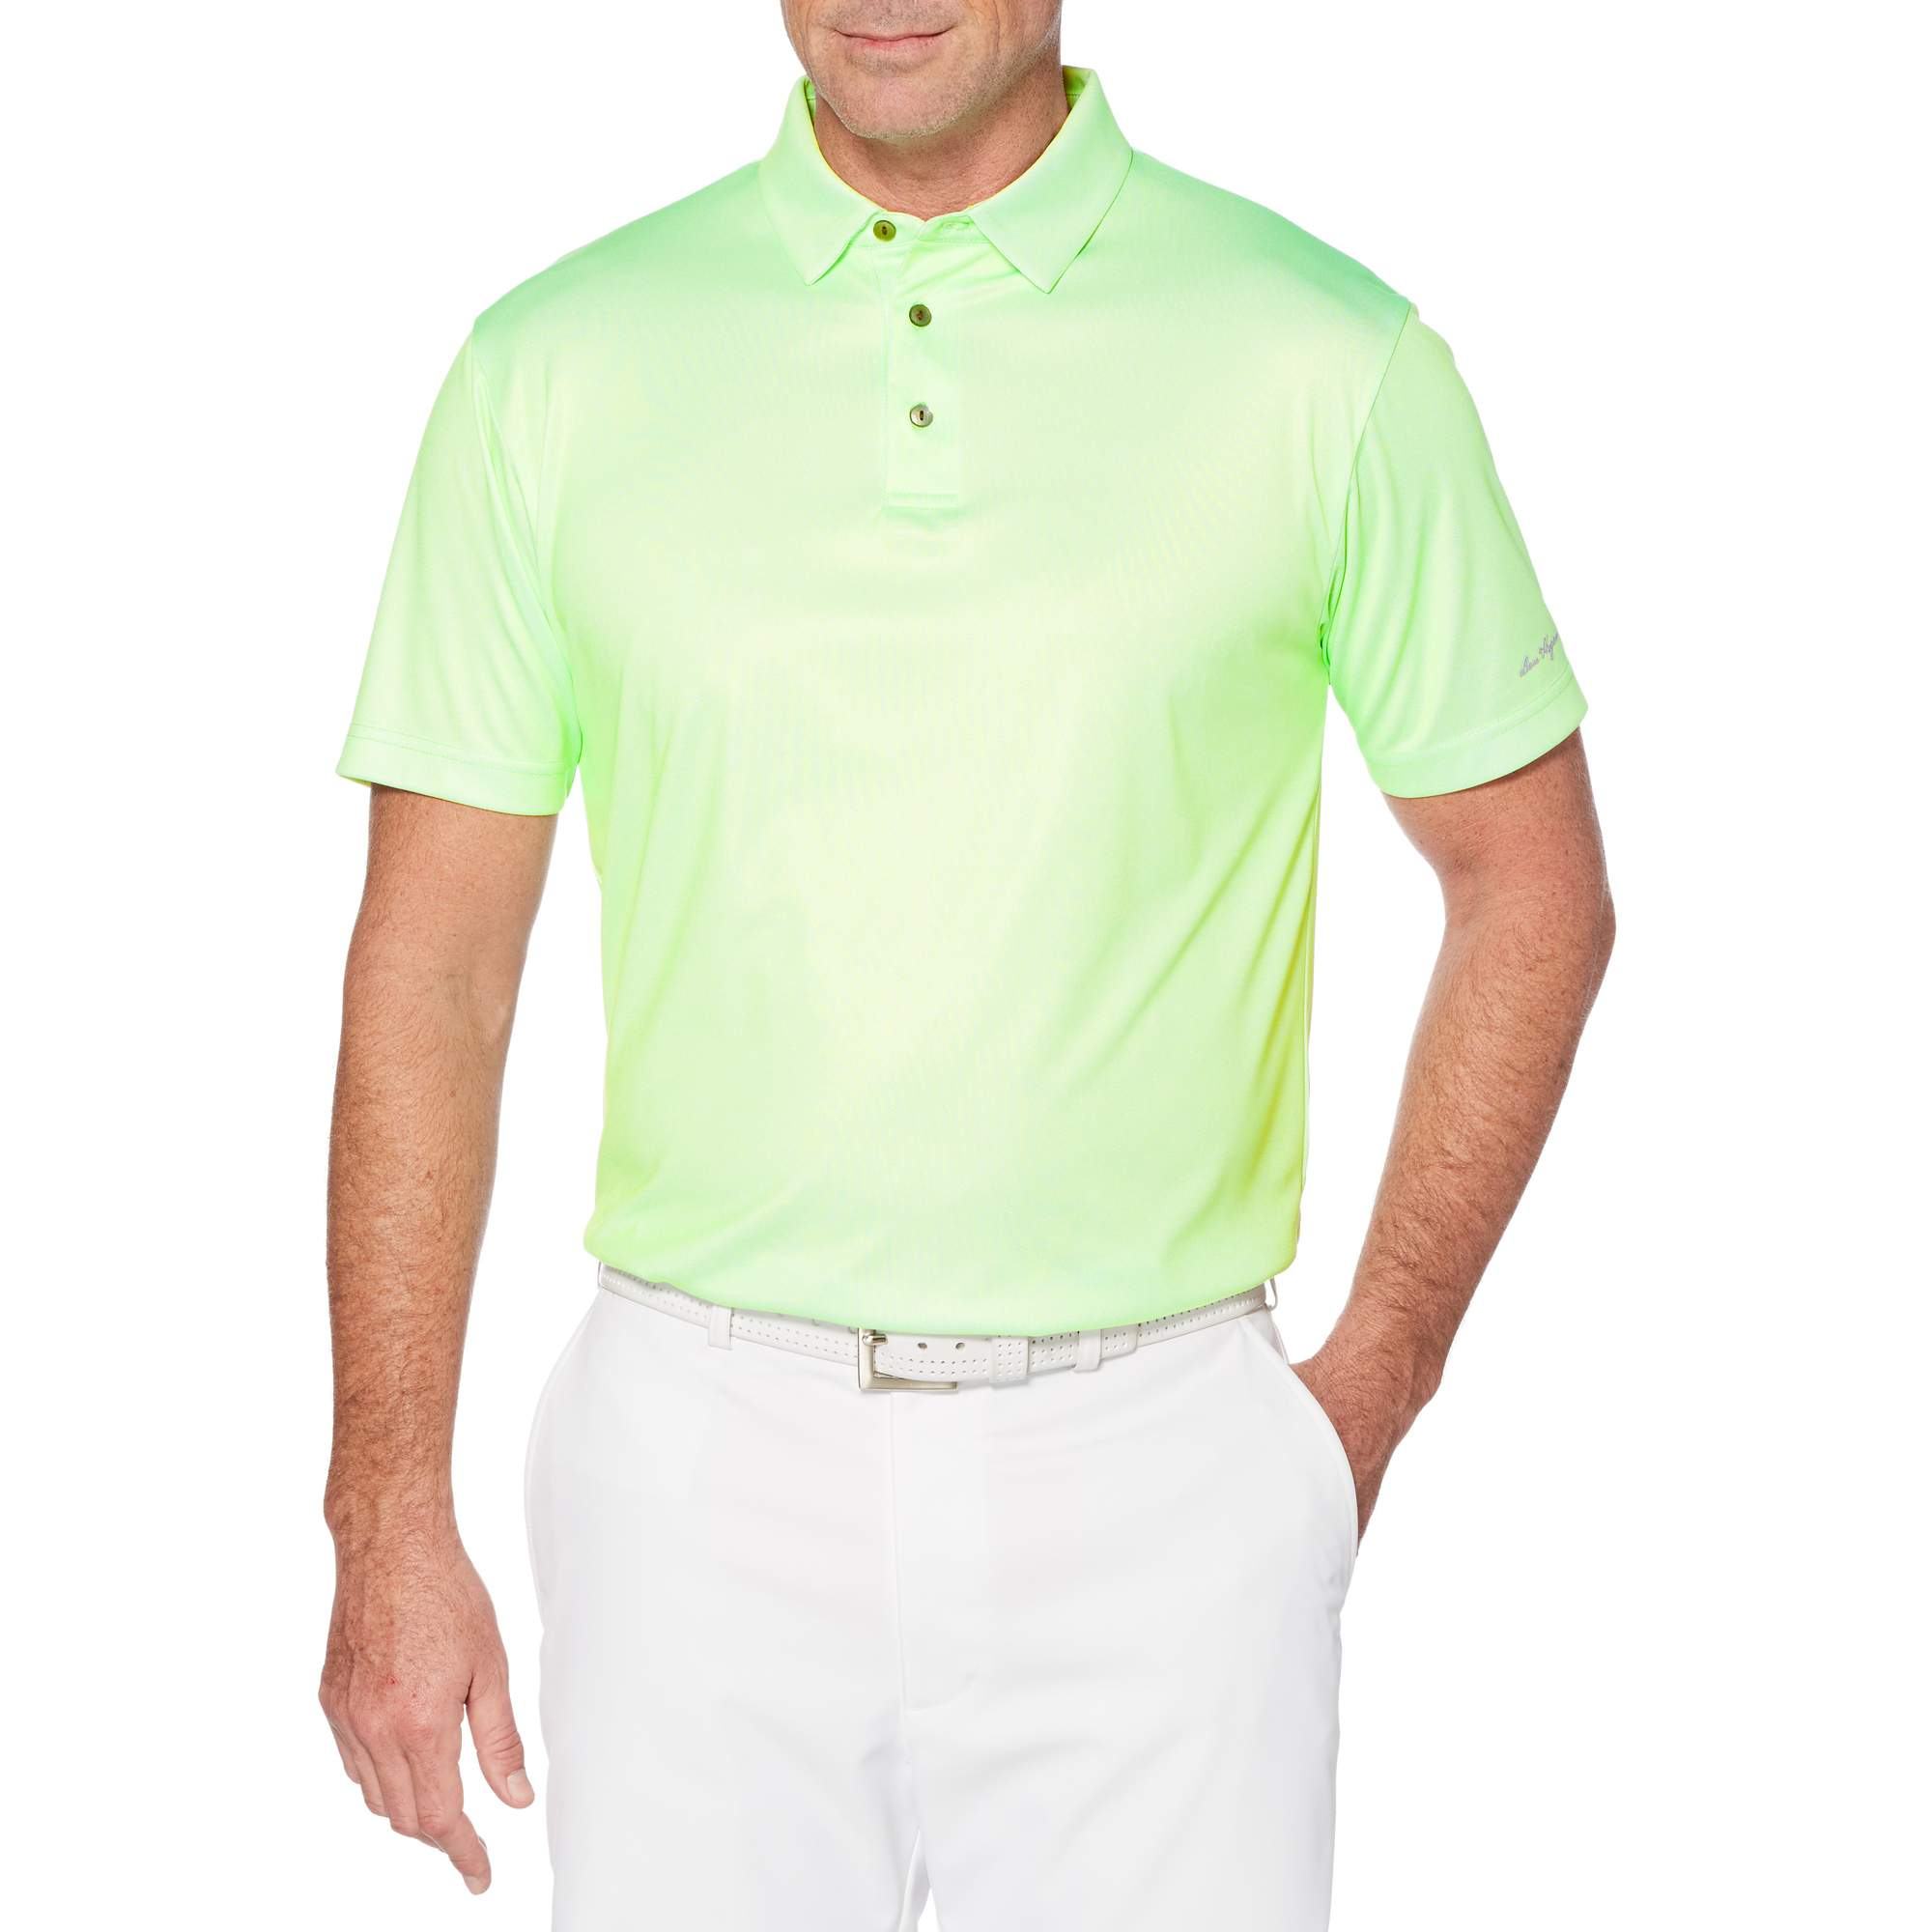 Big Men's Performance Short Sleeve Printed Golf Polo by Generic